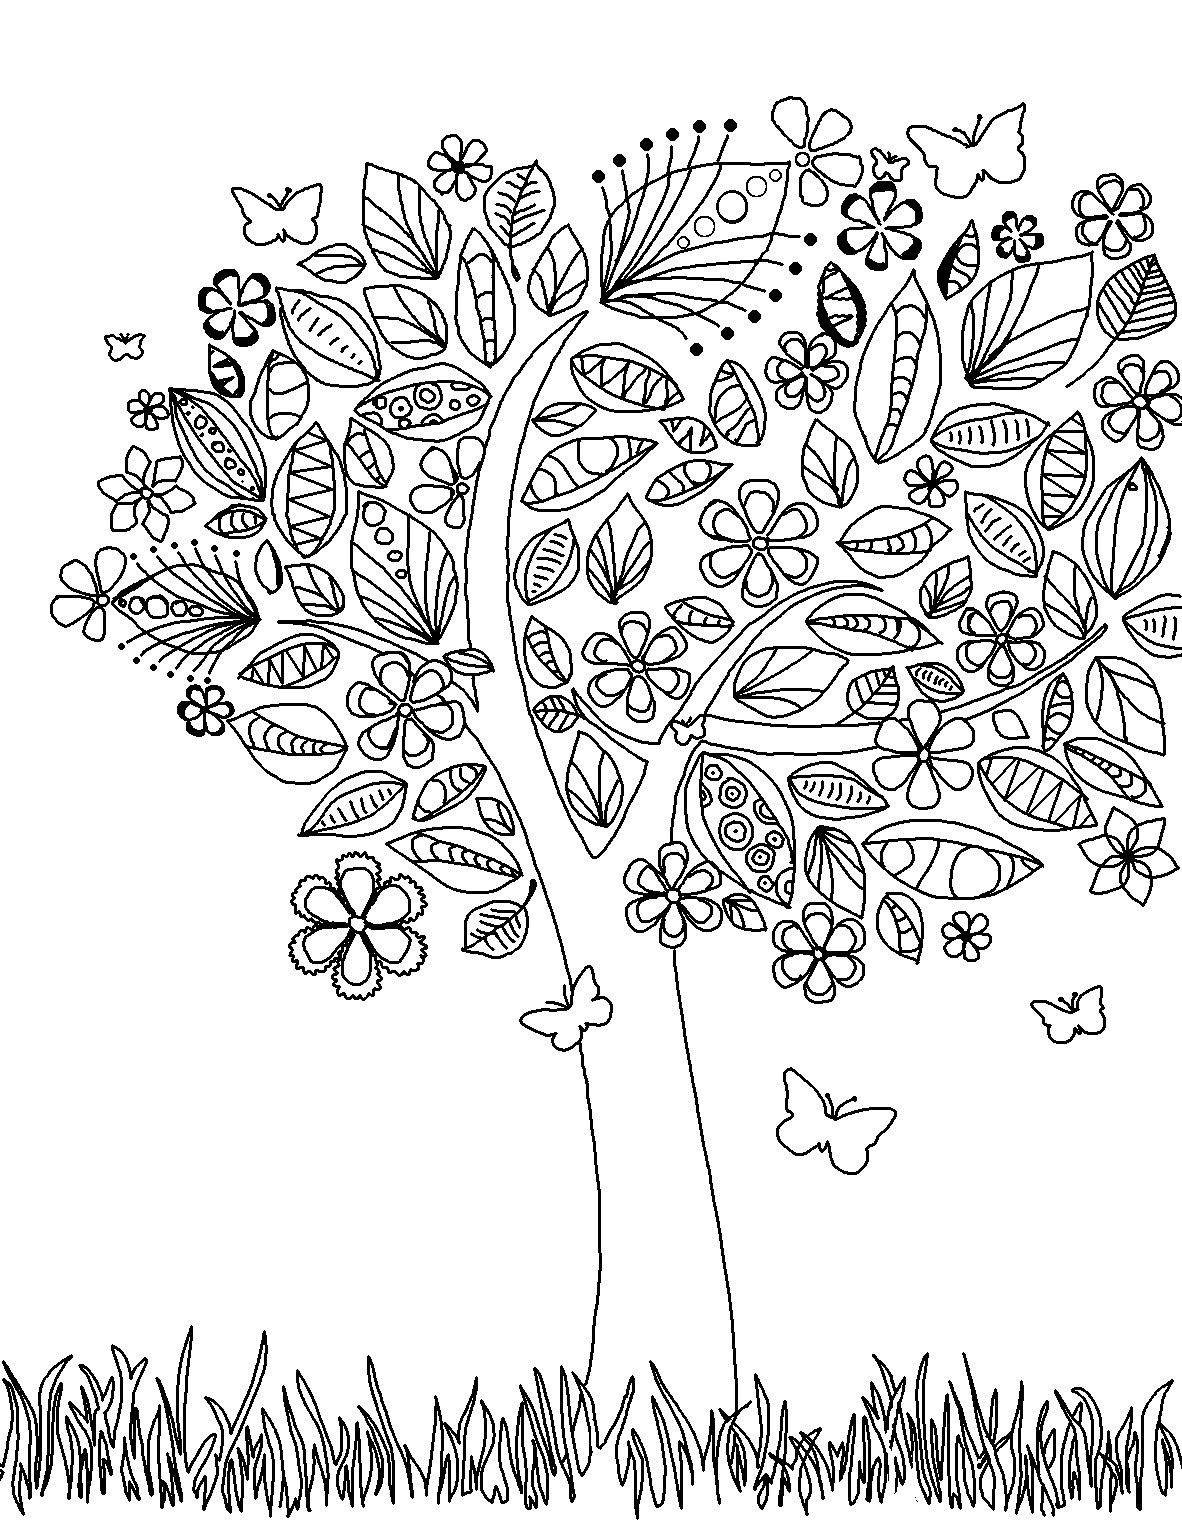 Coloring Page World Tree Coloring Page With Flowers And - coloring pages flowers and trees